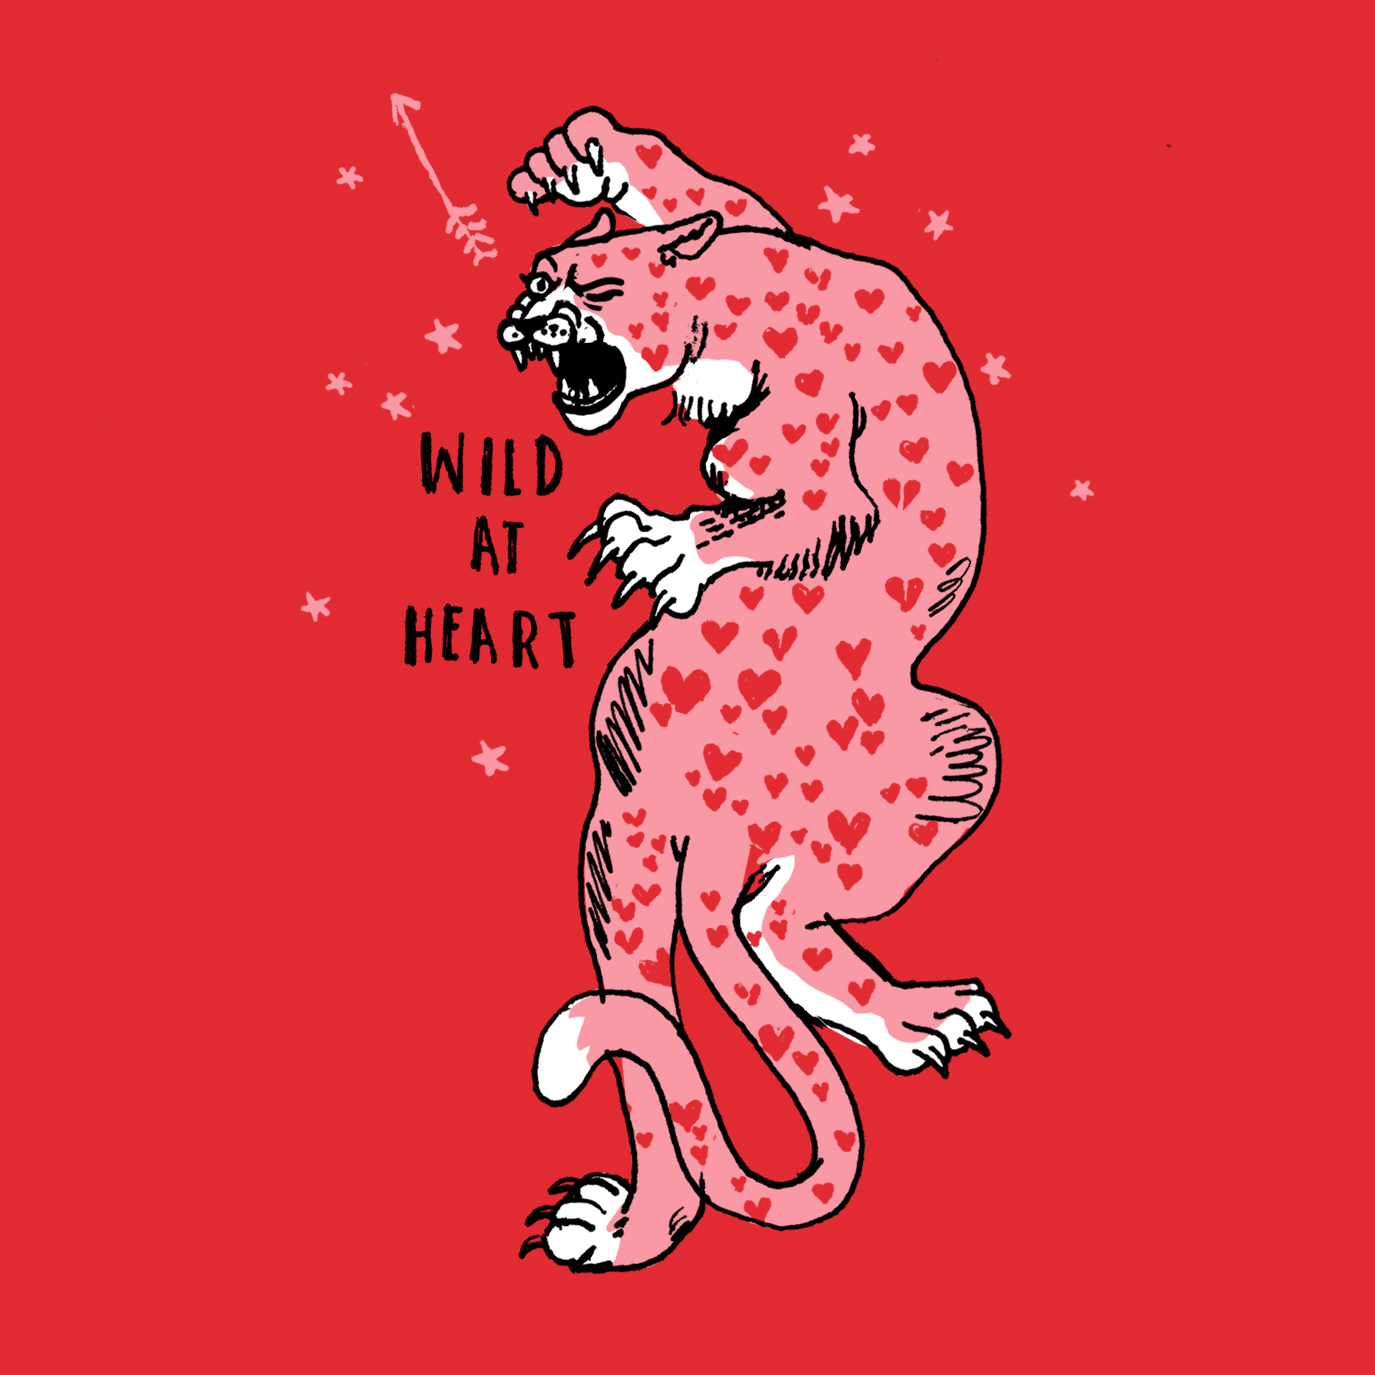 cheeta heart card 4.jpg